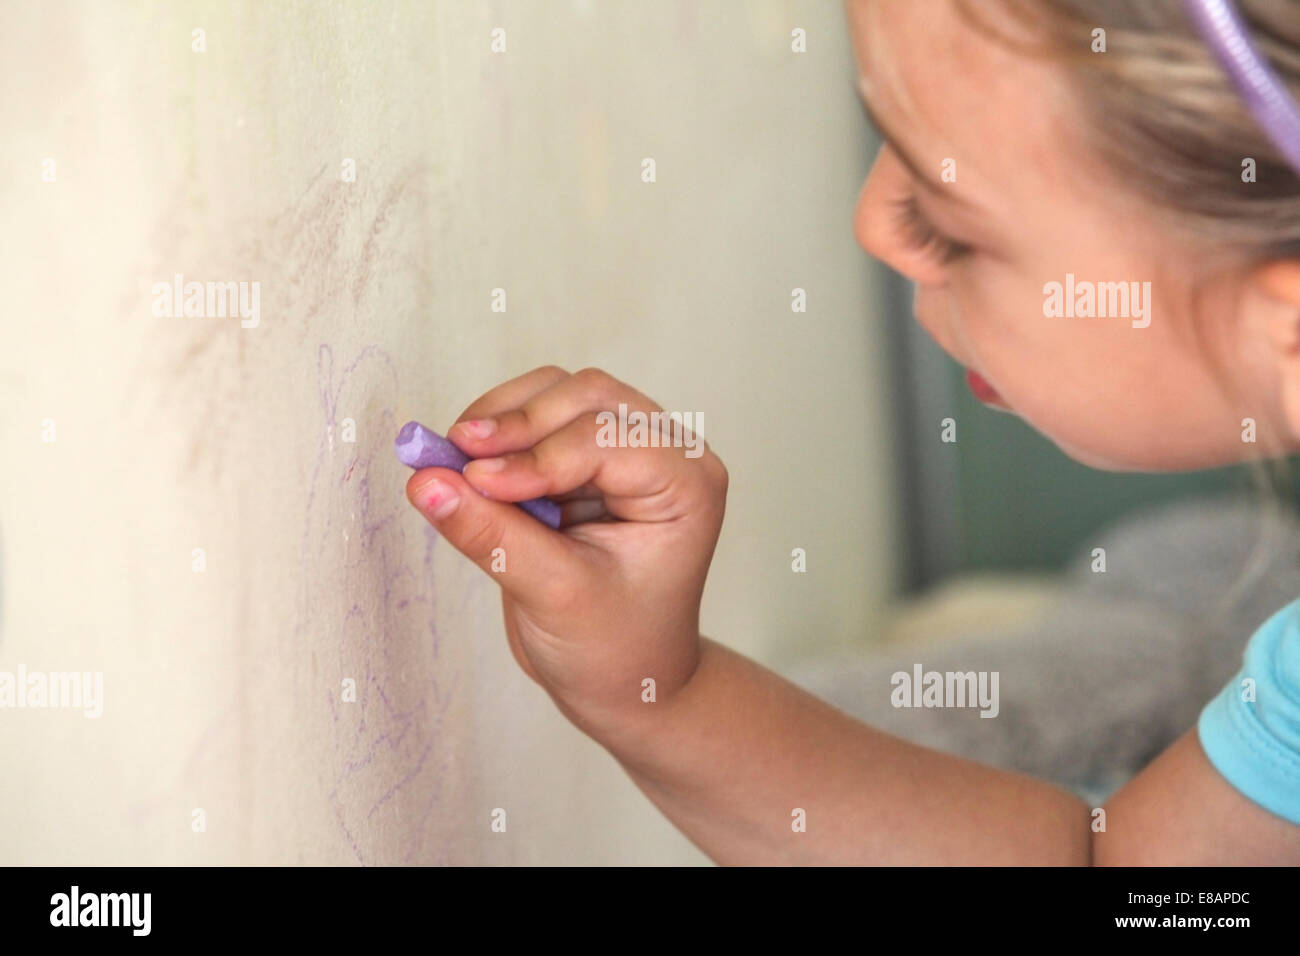 Young girl drawing on wall with chalk - Stock Image